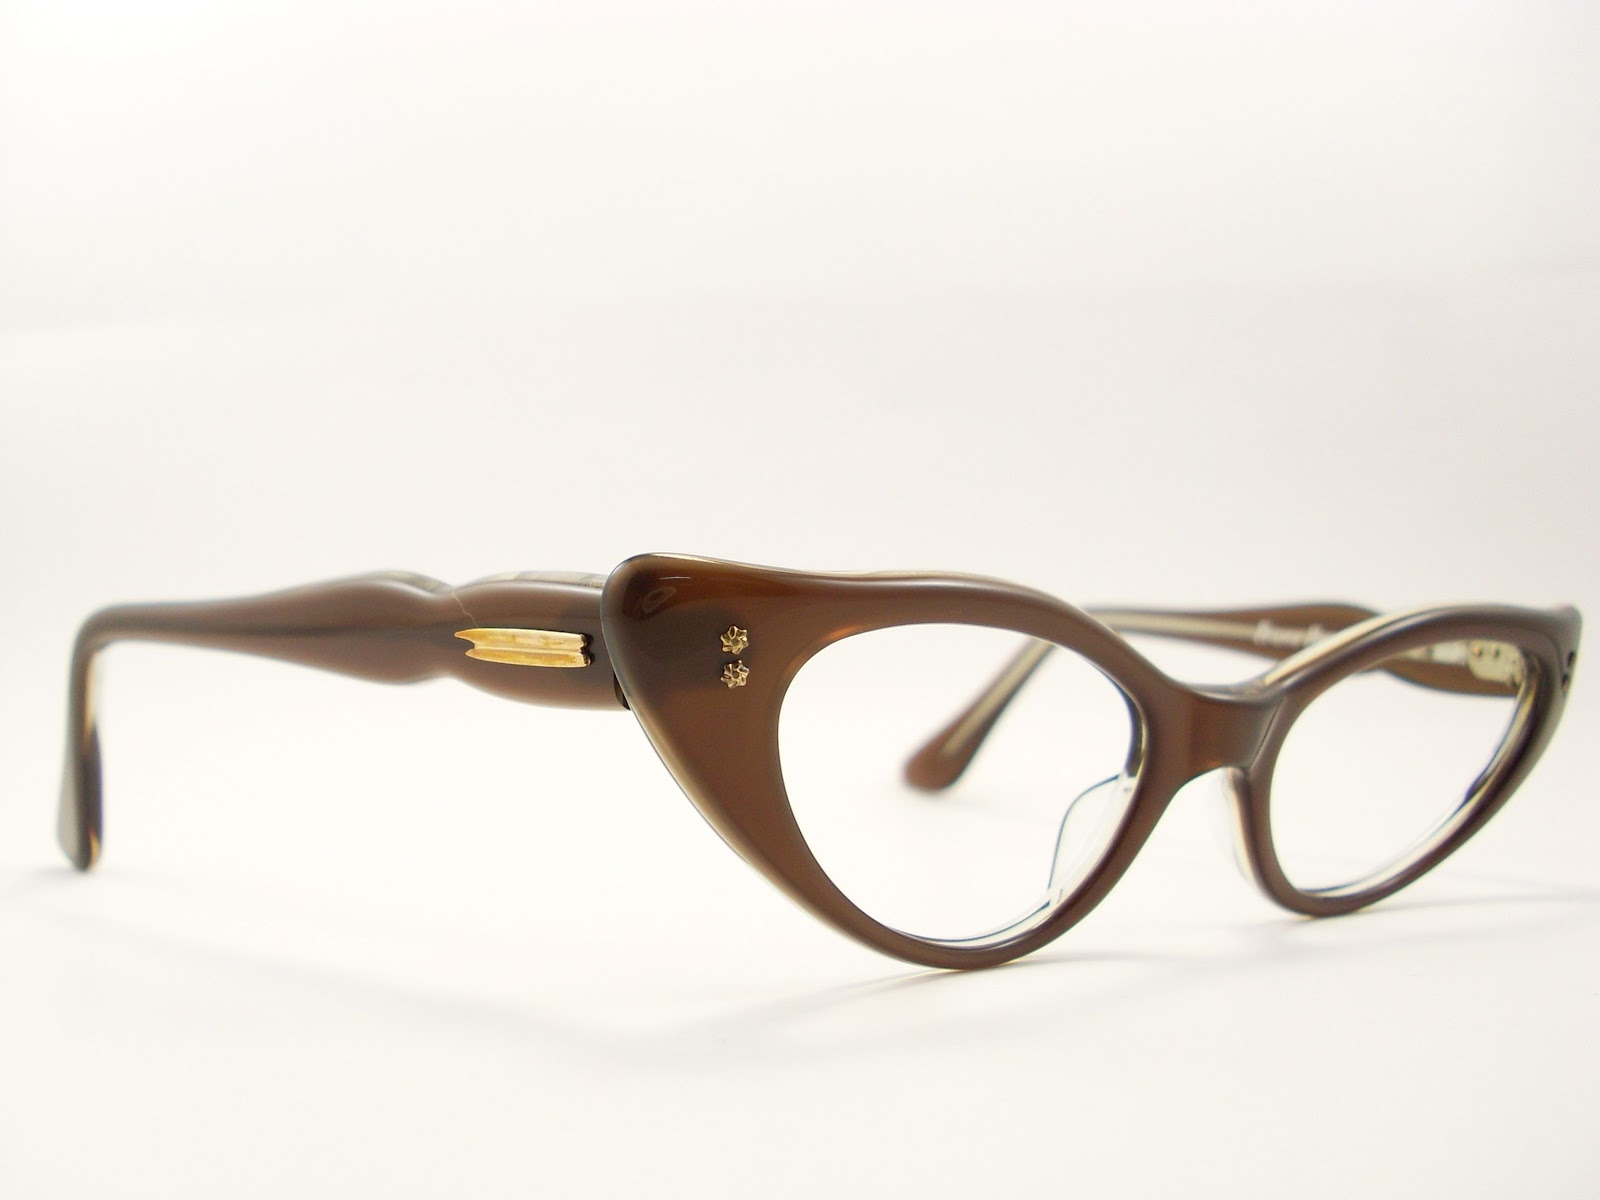 Old Glasses Frames New Lenses : Vintage Eyeglasses Frames Eyewear Sunglasses 50S: Vintage ...